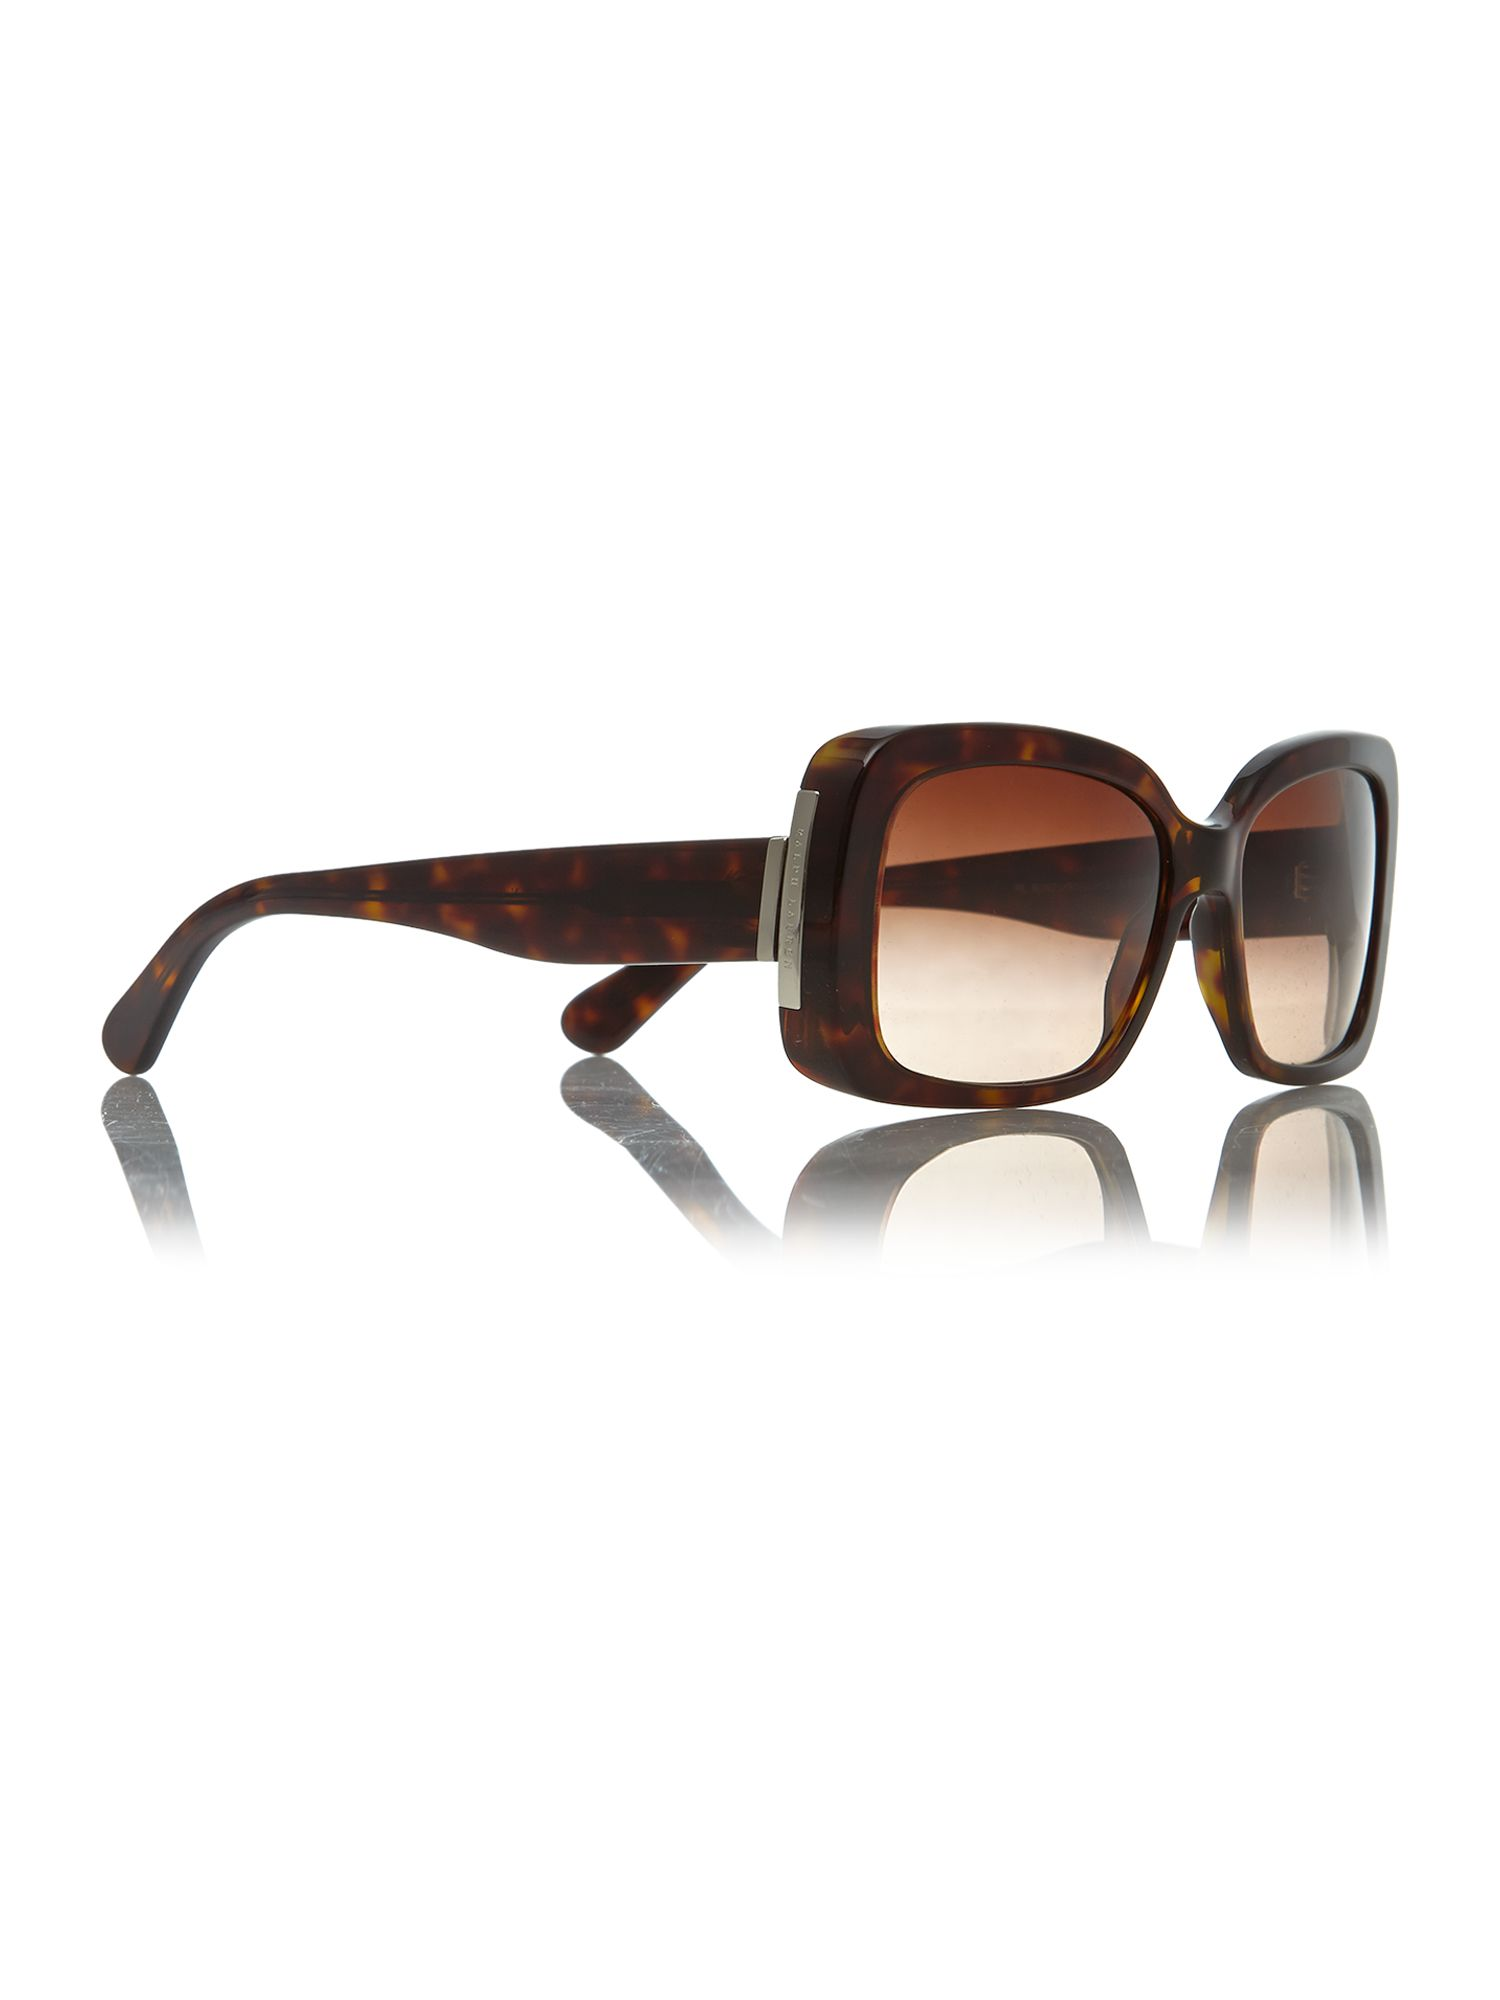 Ralph lauren ladies RL8092 dark havana america do